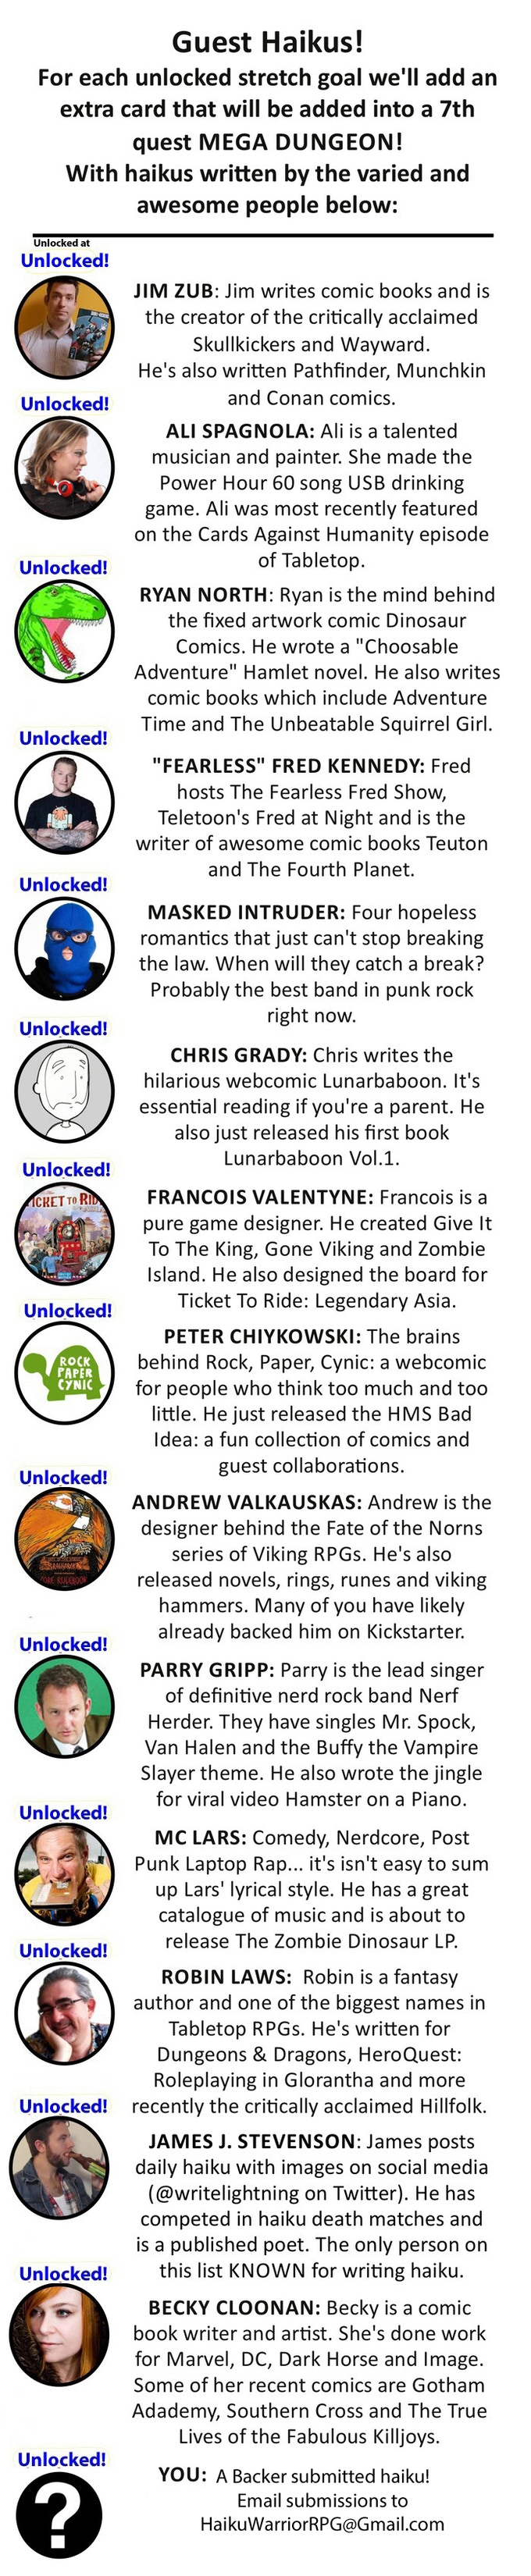 Thanks to these backers and talented industry pros for writing haikus!